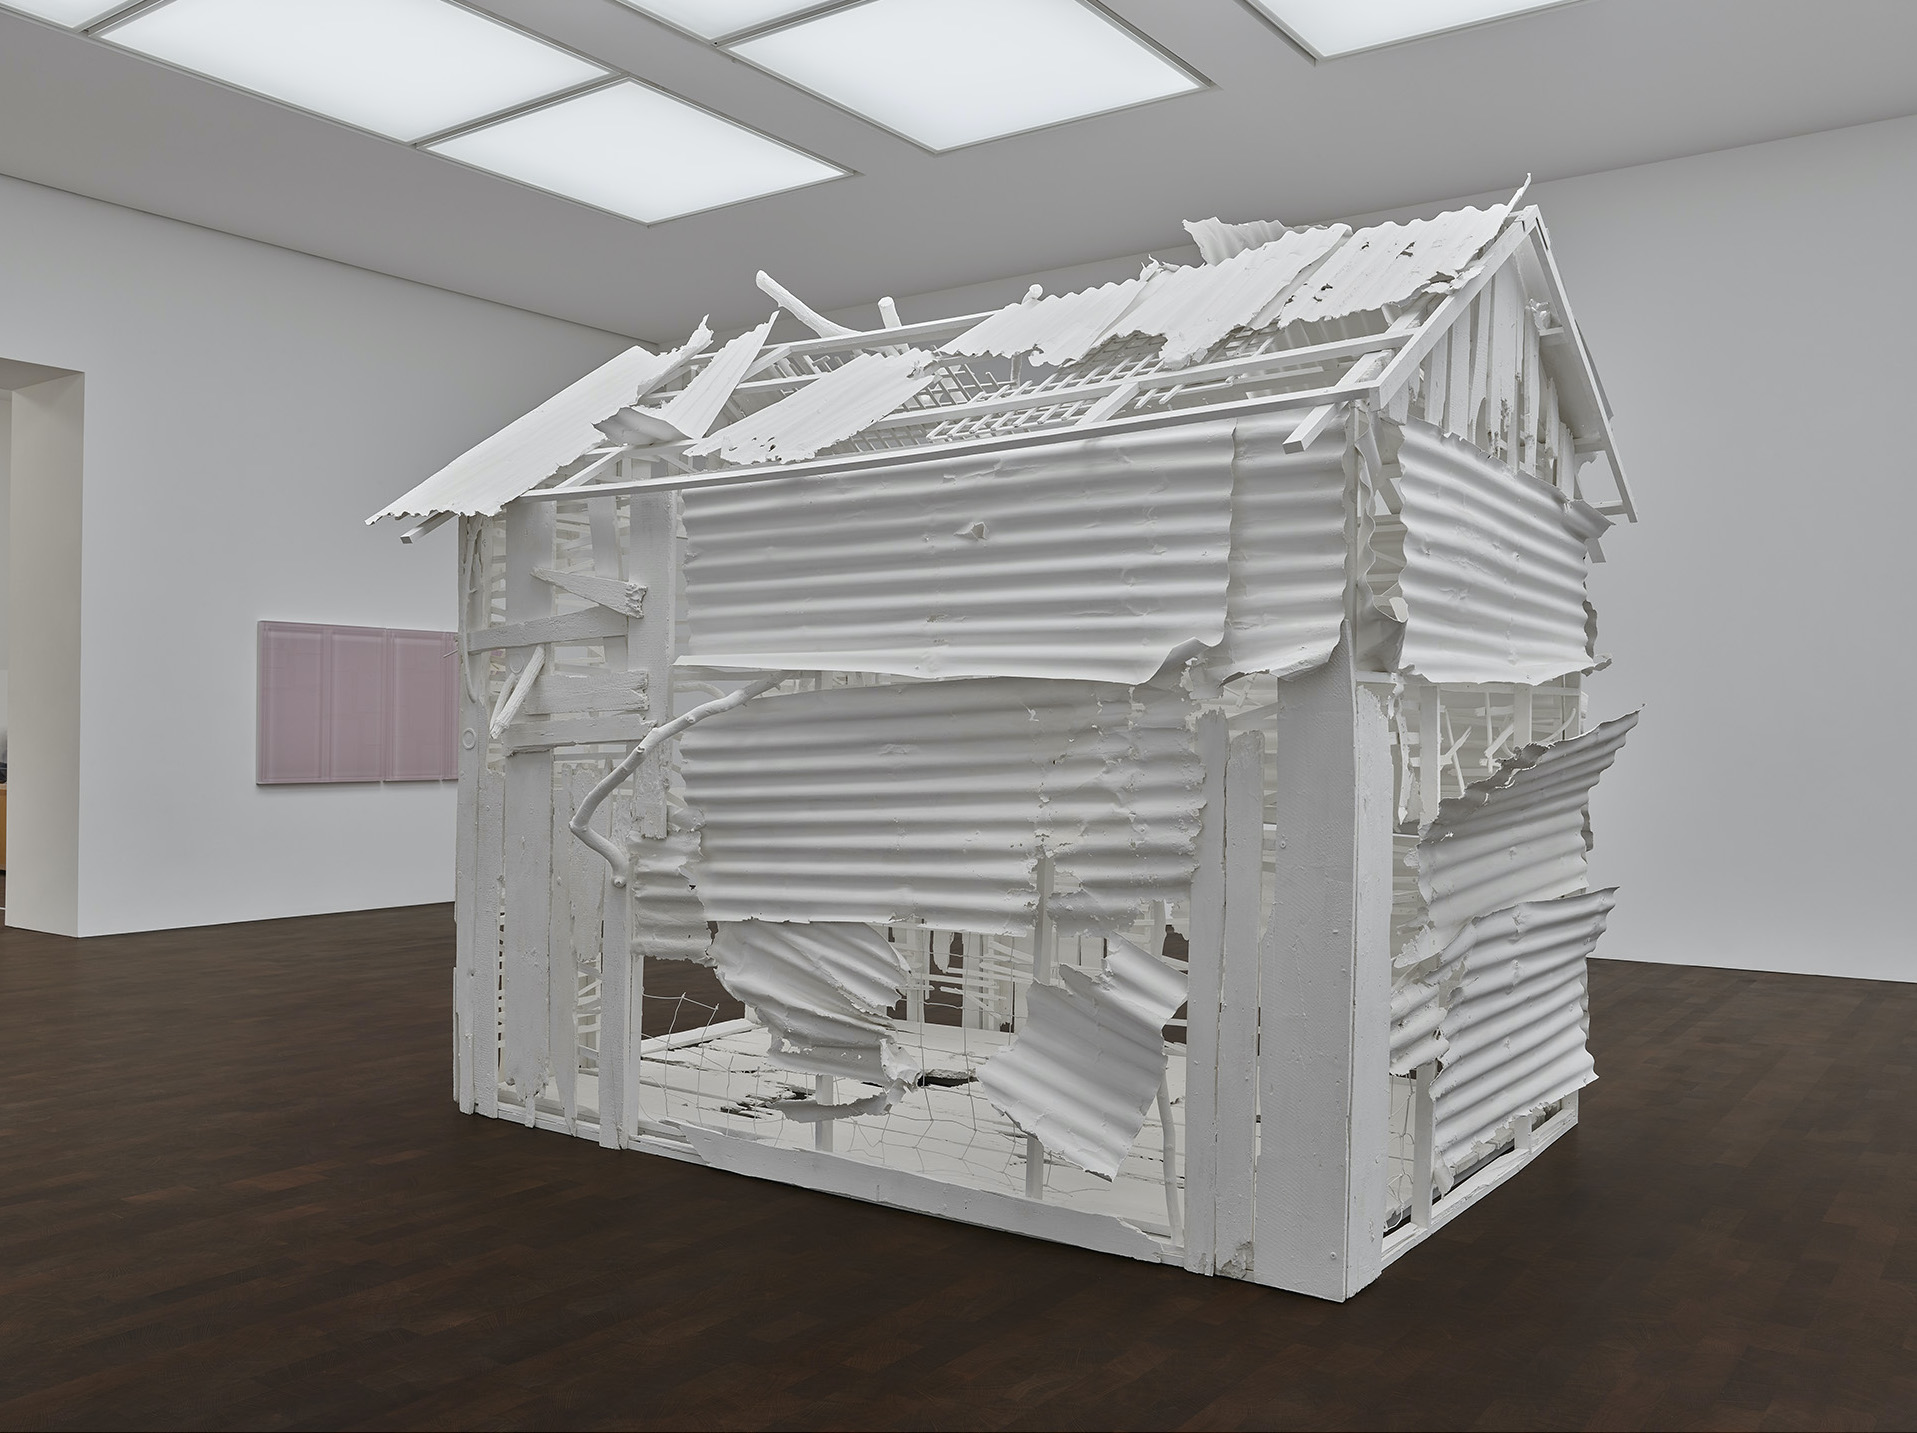 Rachel Whiteread: Internal Objects, installation view, 2021. © Rachel Whiteread. Photo: Prudence Cuming Associates. Courtesy Gagosian